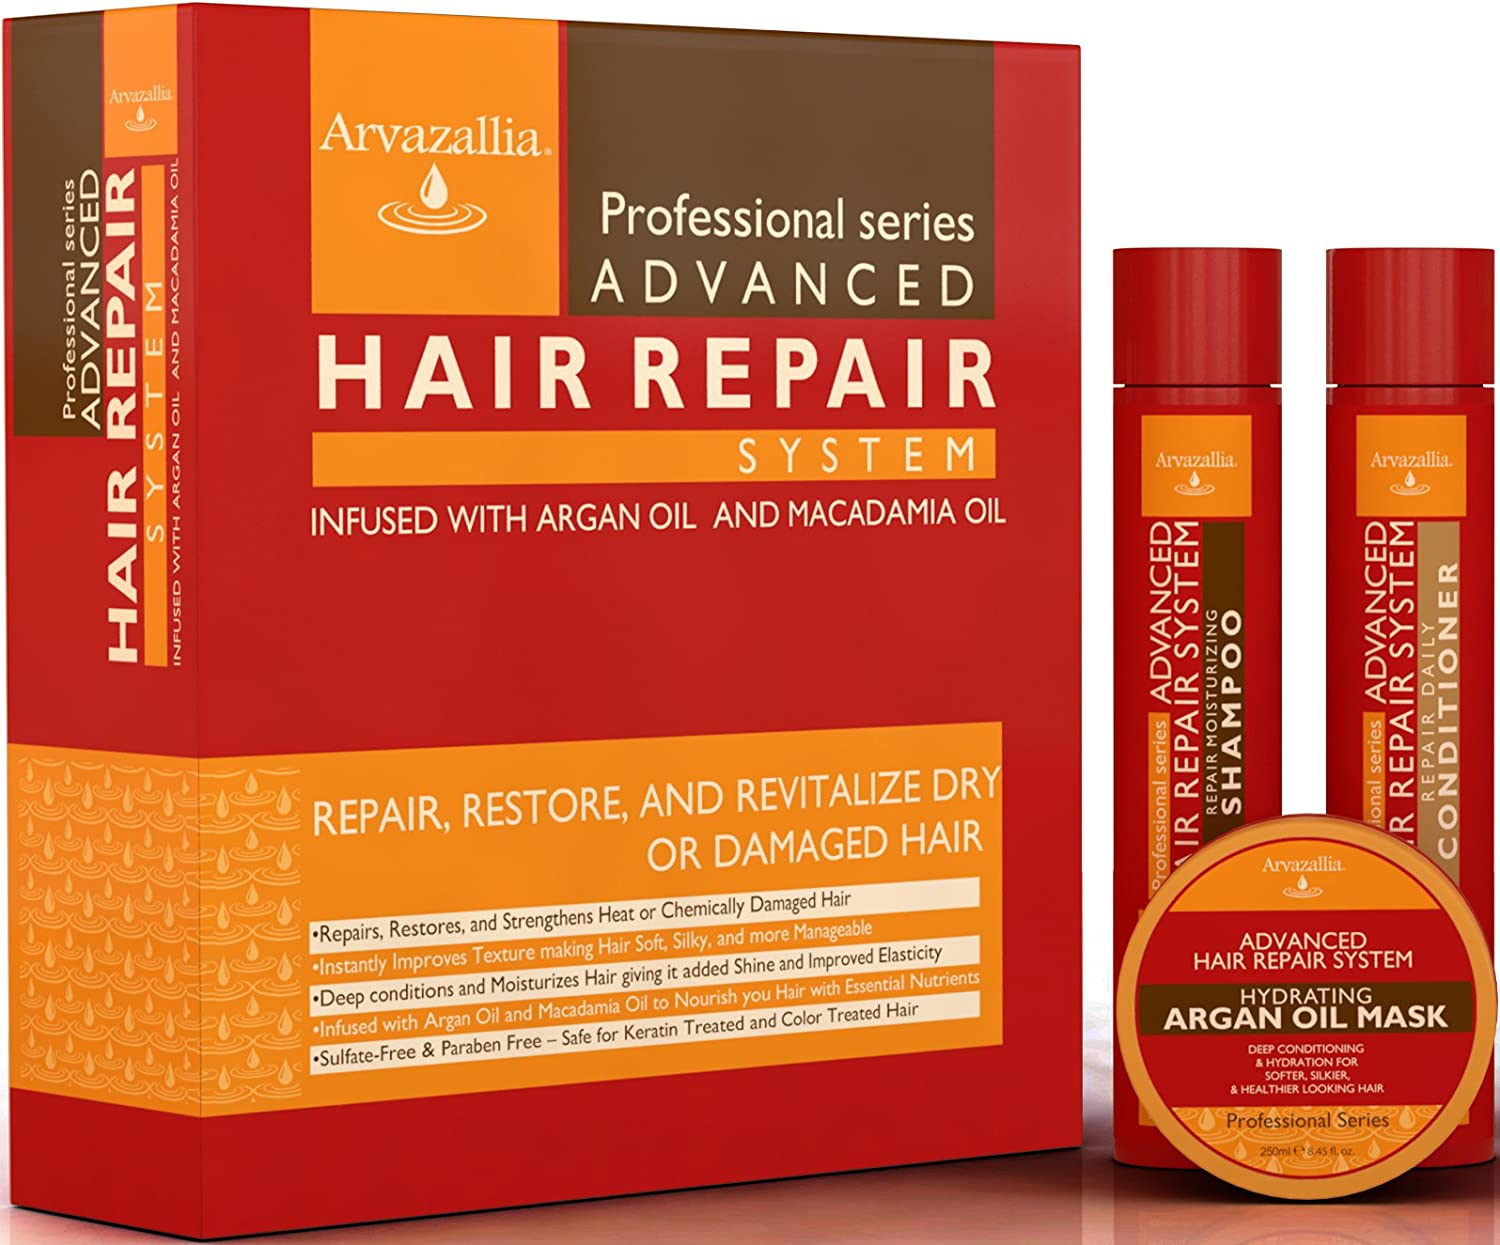 Advanced Hair Repair Shampoo and Conditioner Set with Argan Oil and Macadamia Oil by Arvazallia - Sulfate Free Shampoo, Conditioner, and Deep Conditioner Hair Mask System for Dry or Damaged Hair